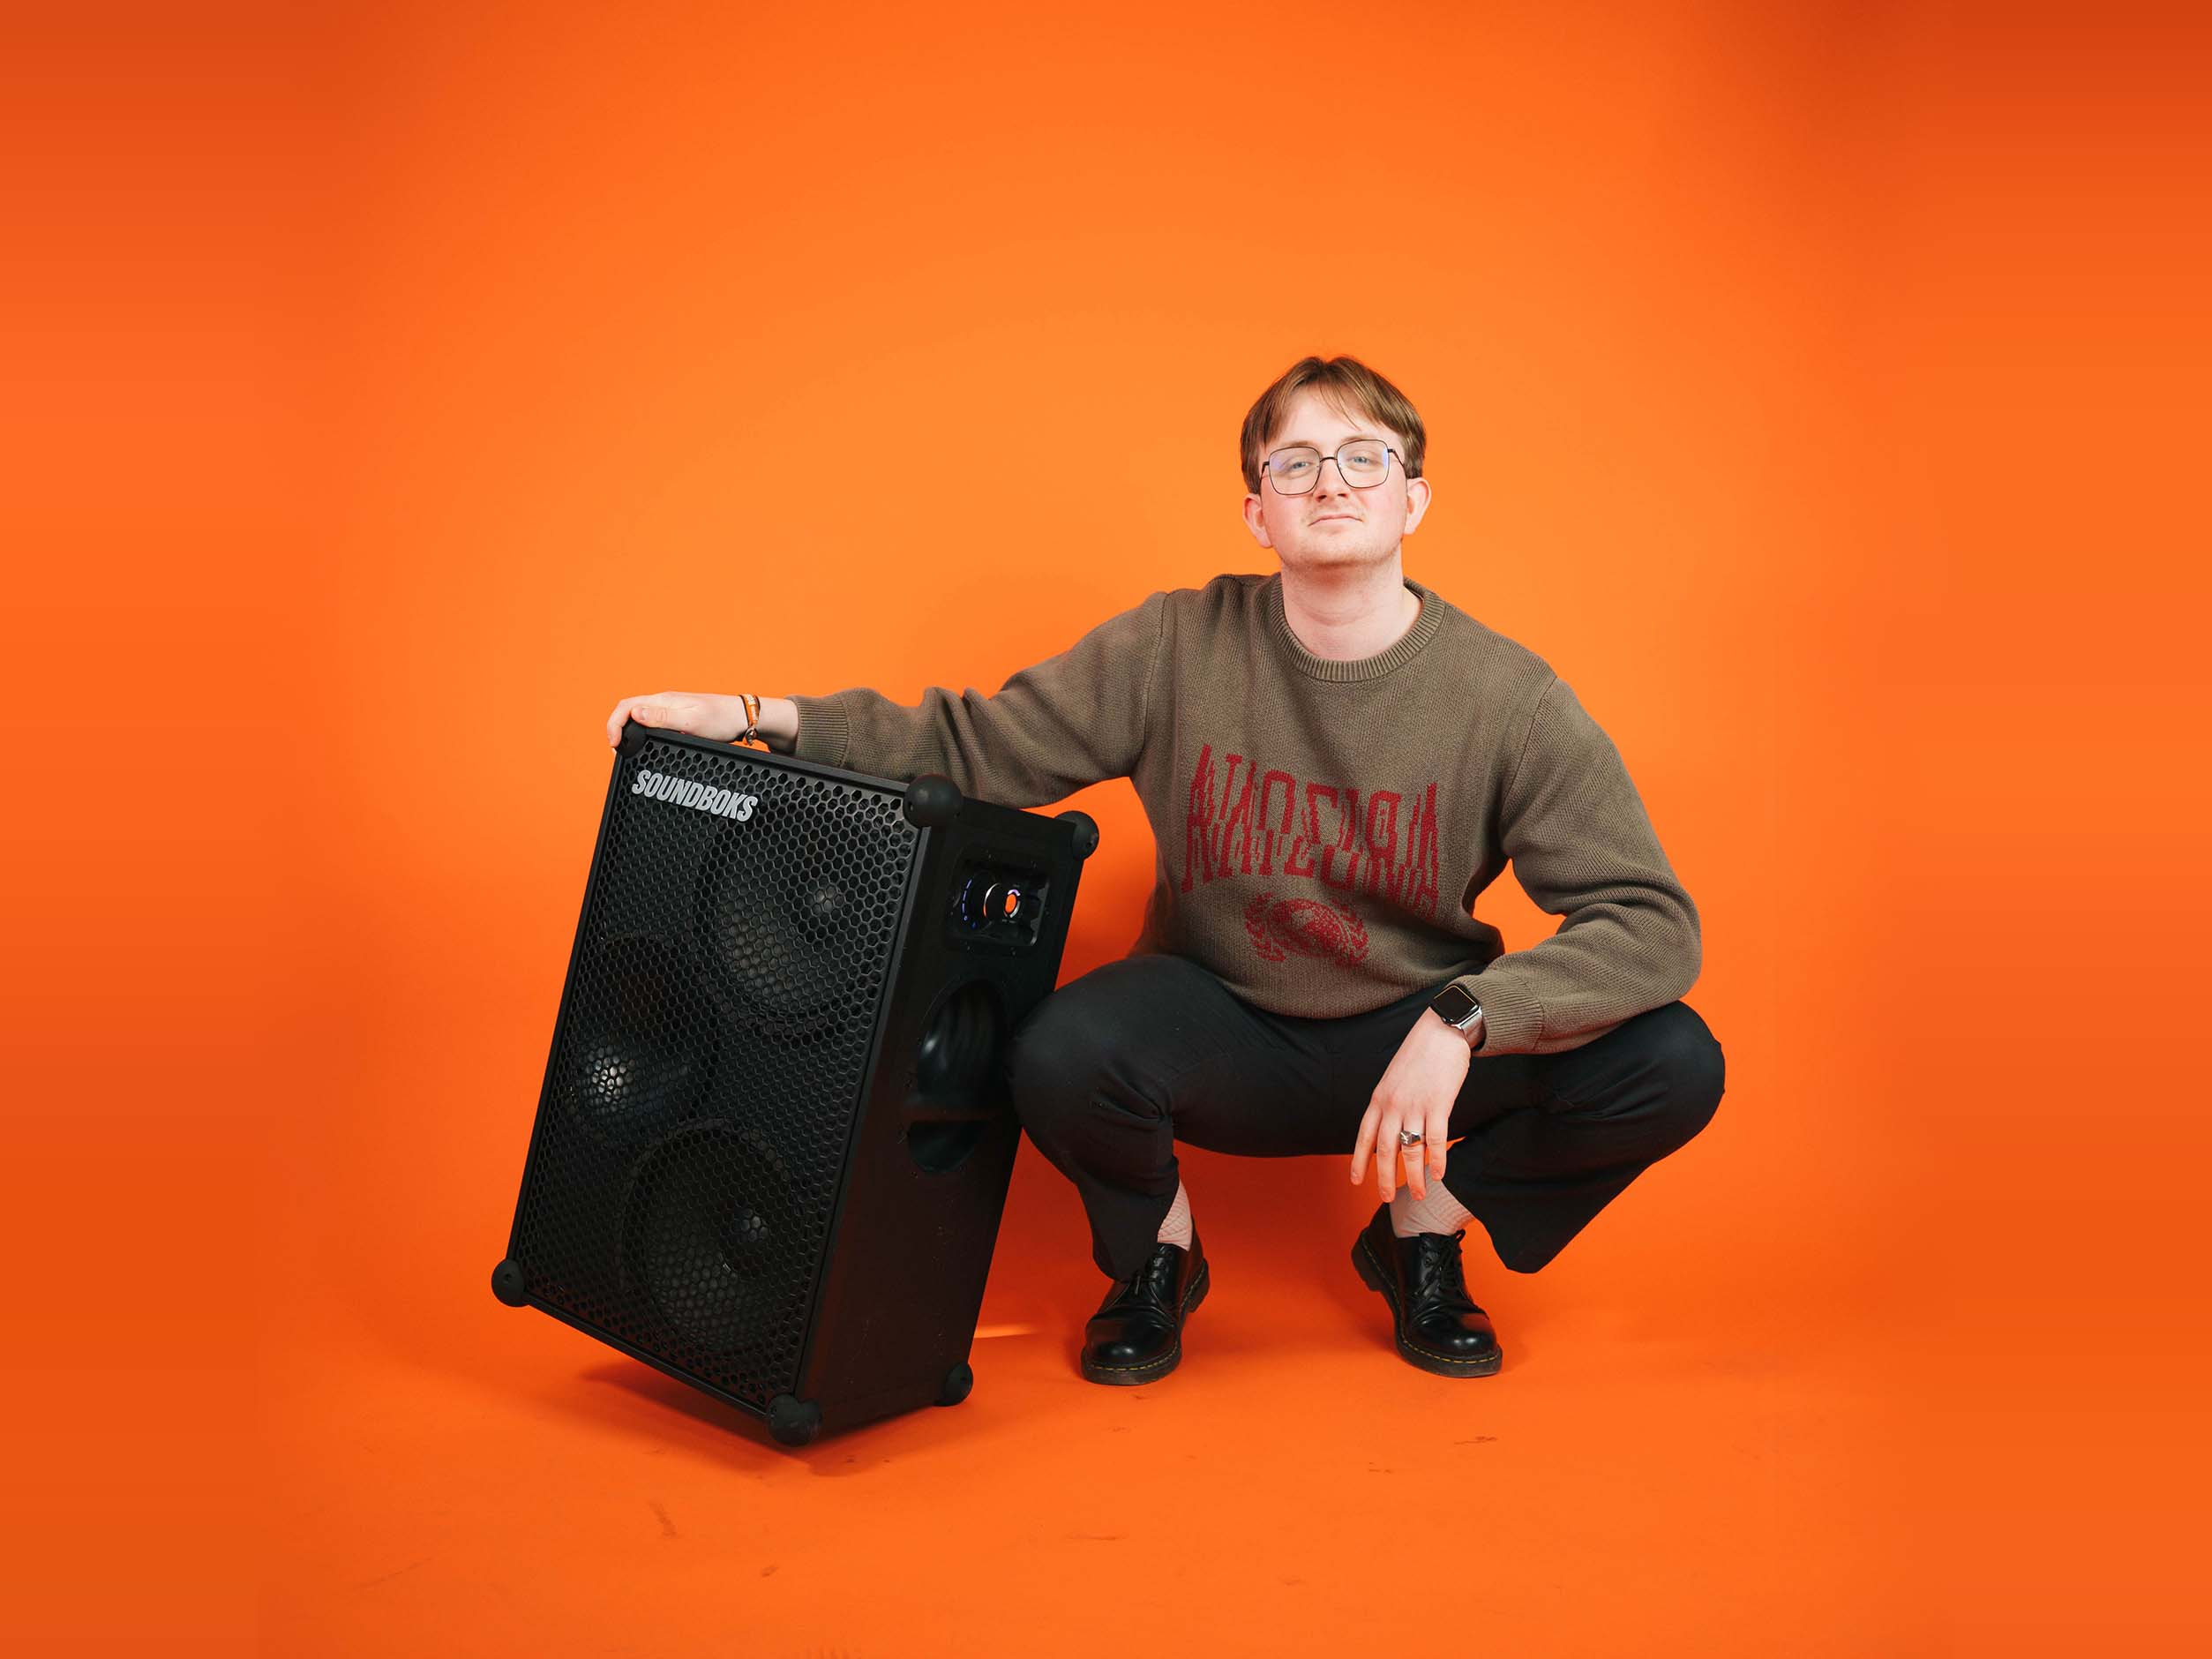 Rasmus sitting with a SOUNDBOKS in front of an orange background